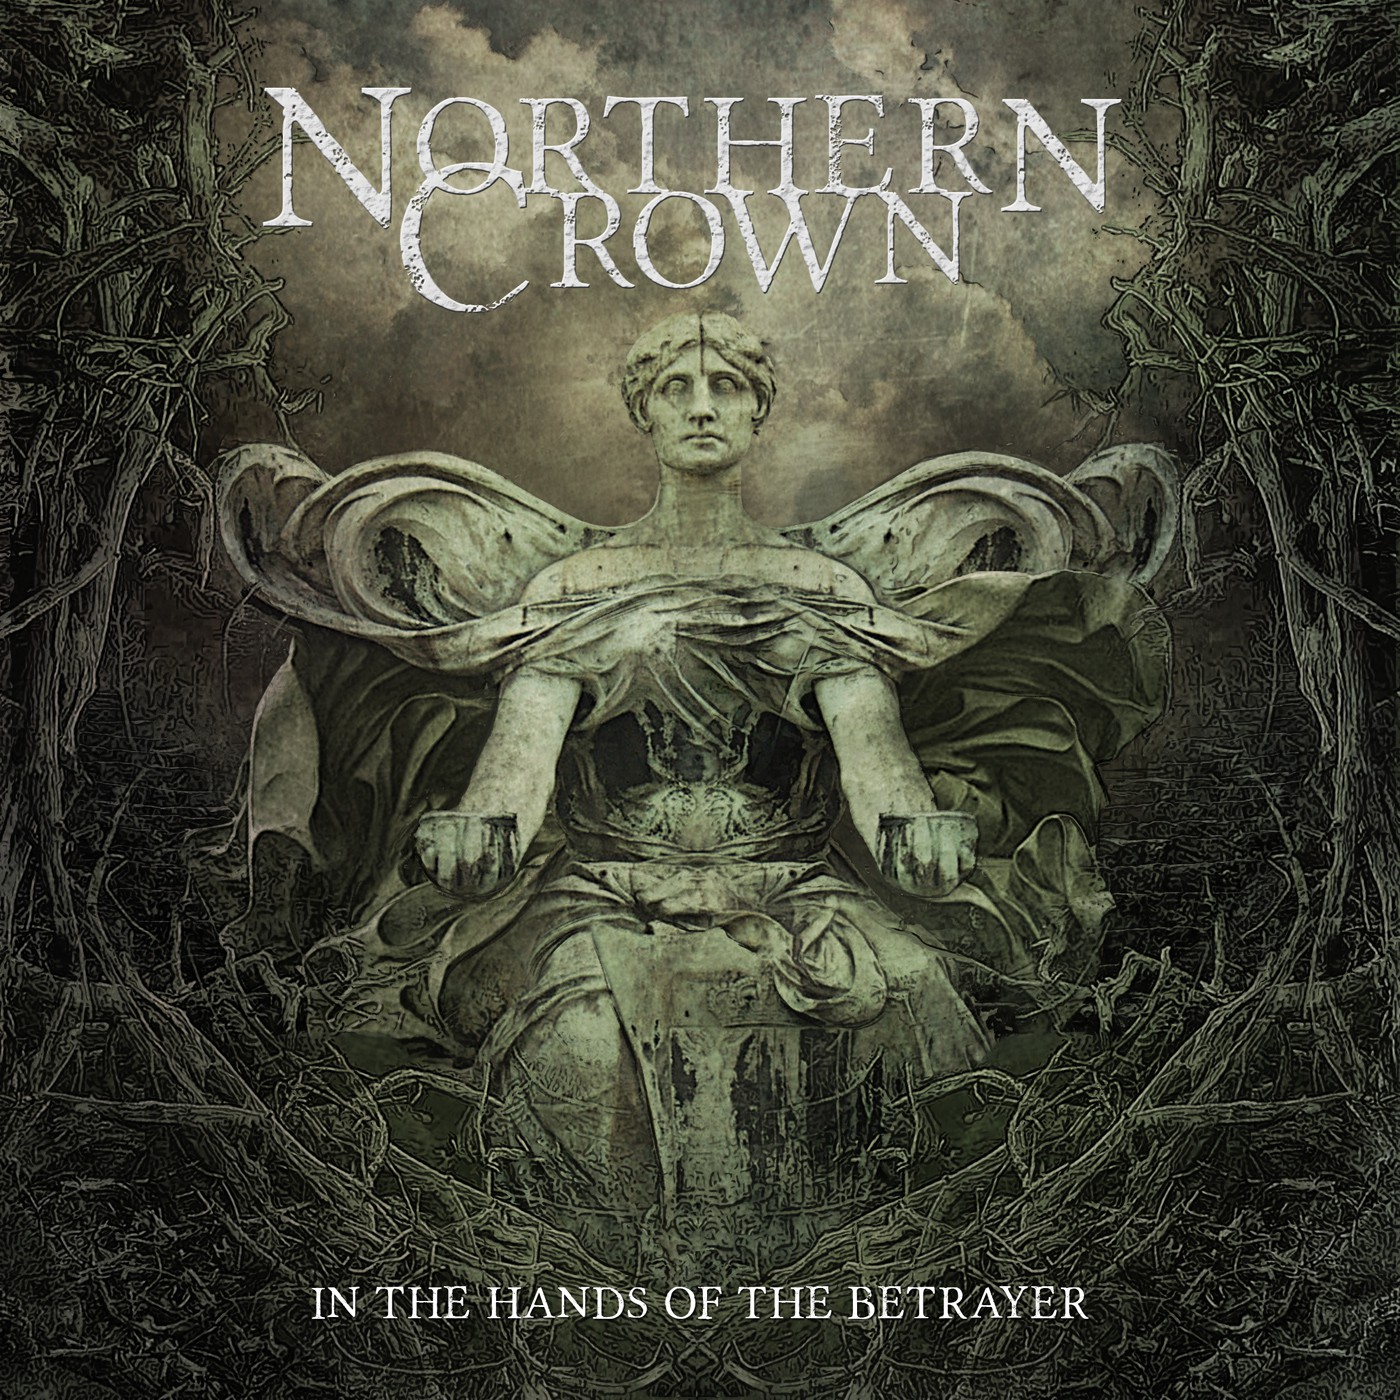 northern crown in the hands of the betrayer